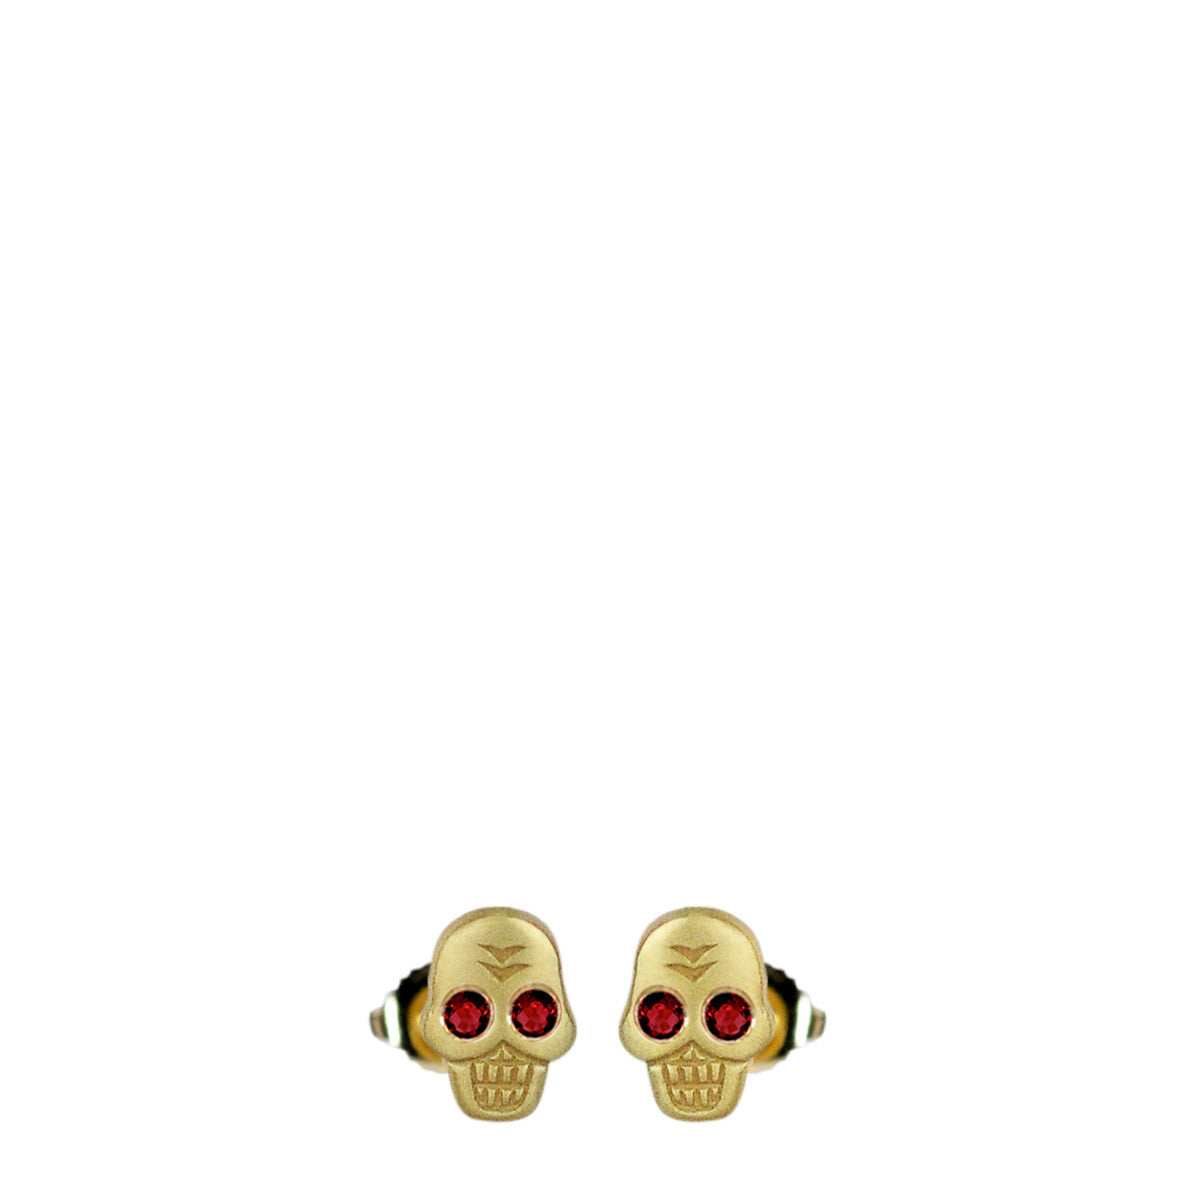 18K Gold Mini Skull Stud Earrings with Ruby Eyes